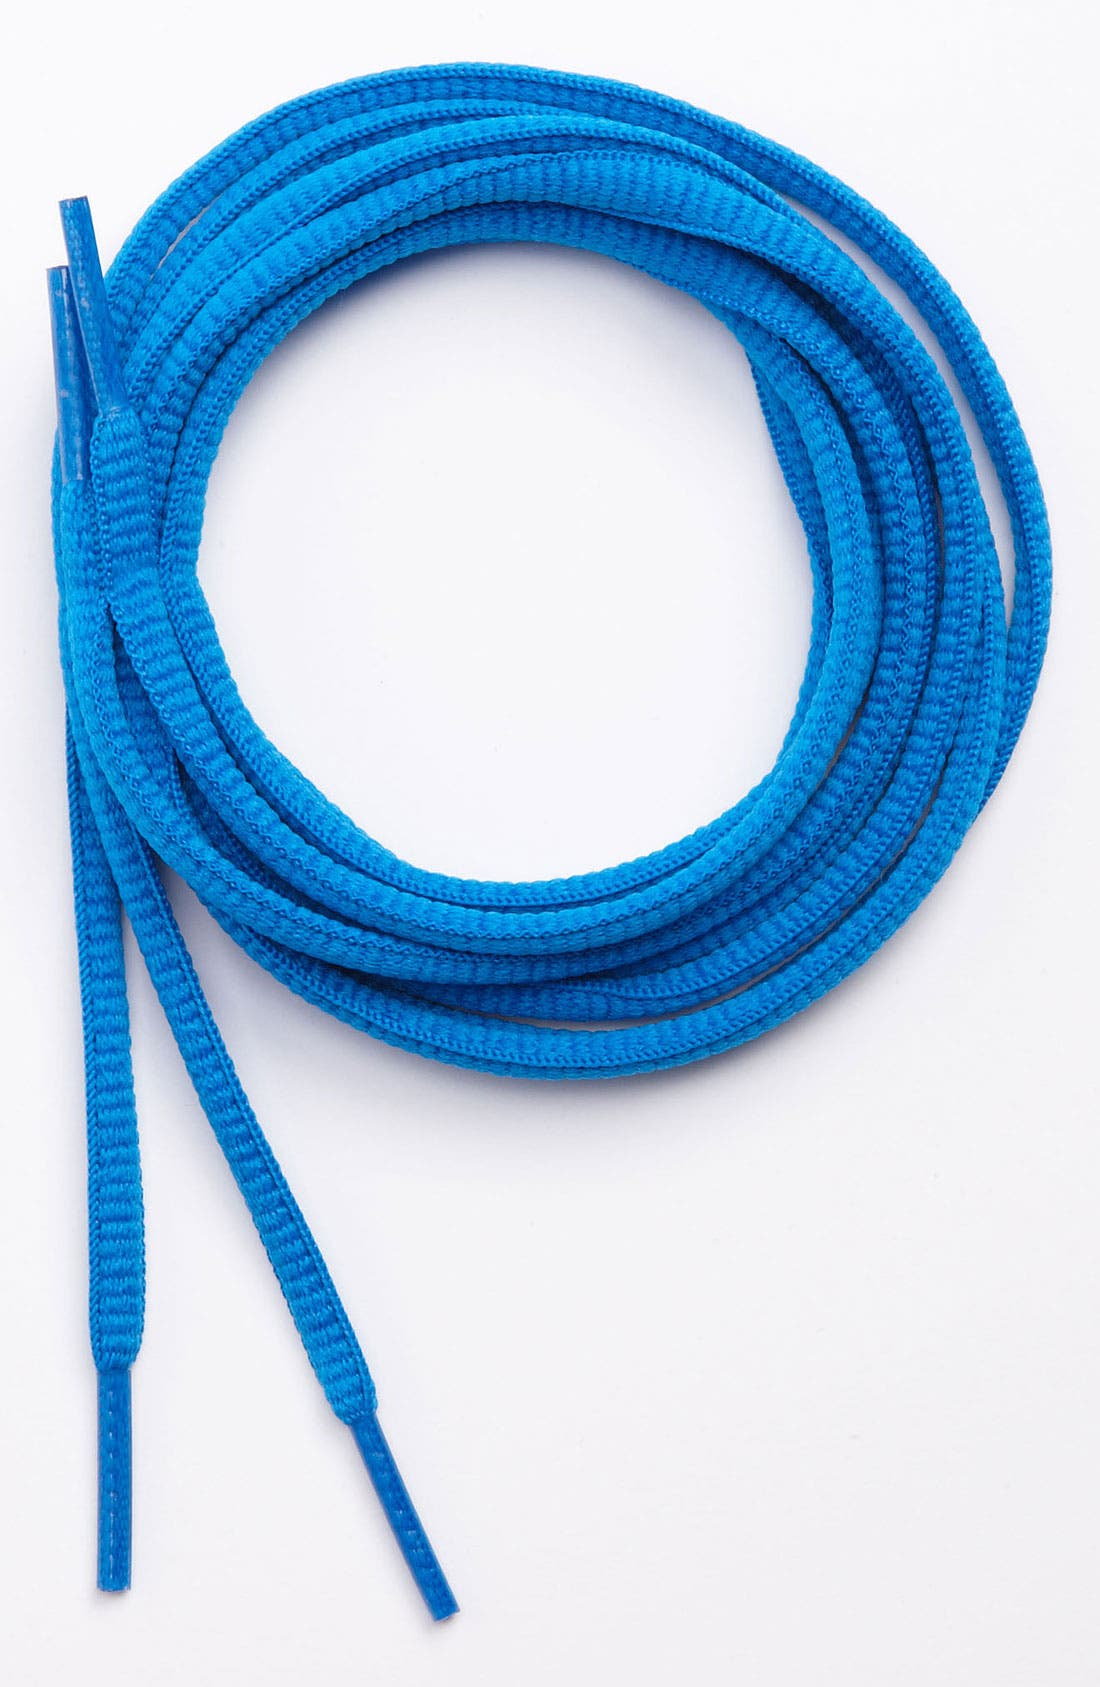 Main Image - Nordstrom 'Oval' Shoelaces (Little Kid & Big Kid)